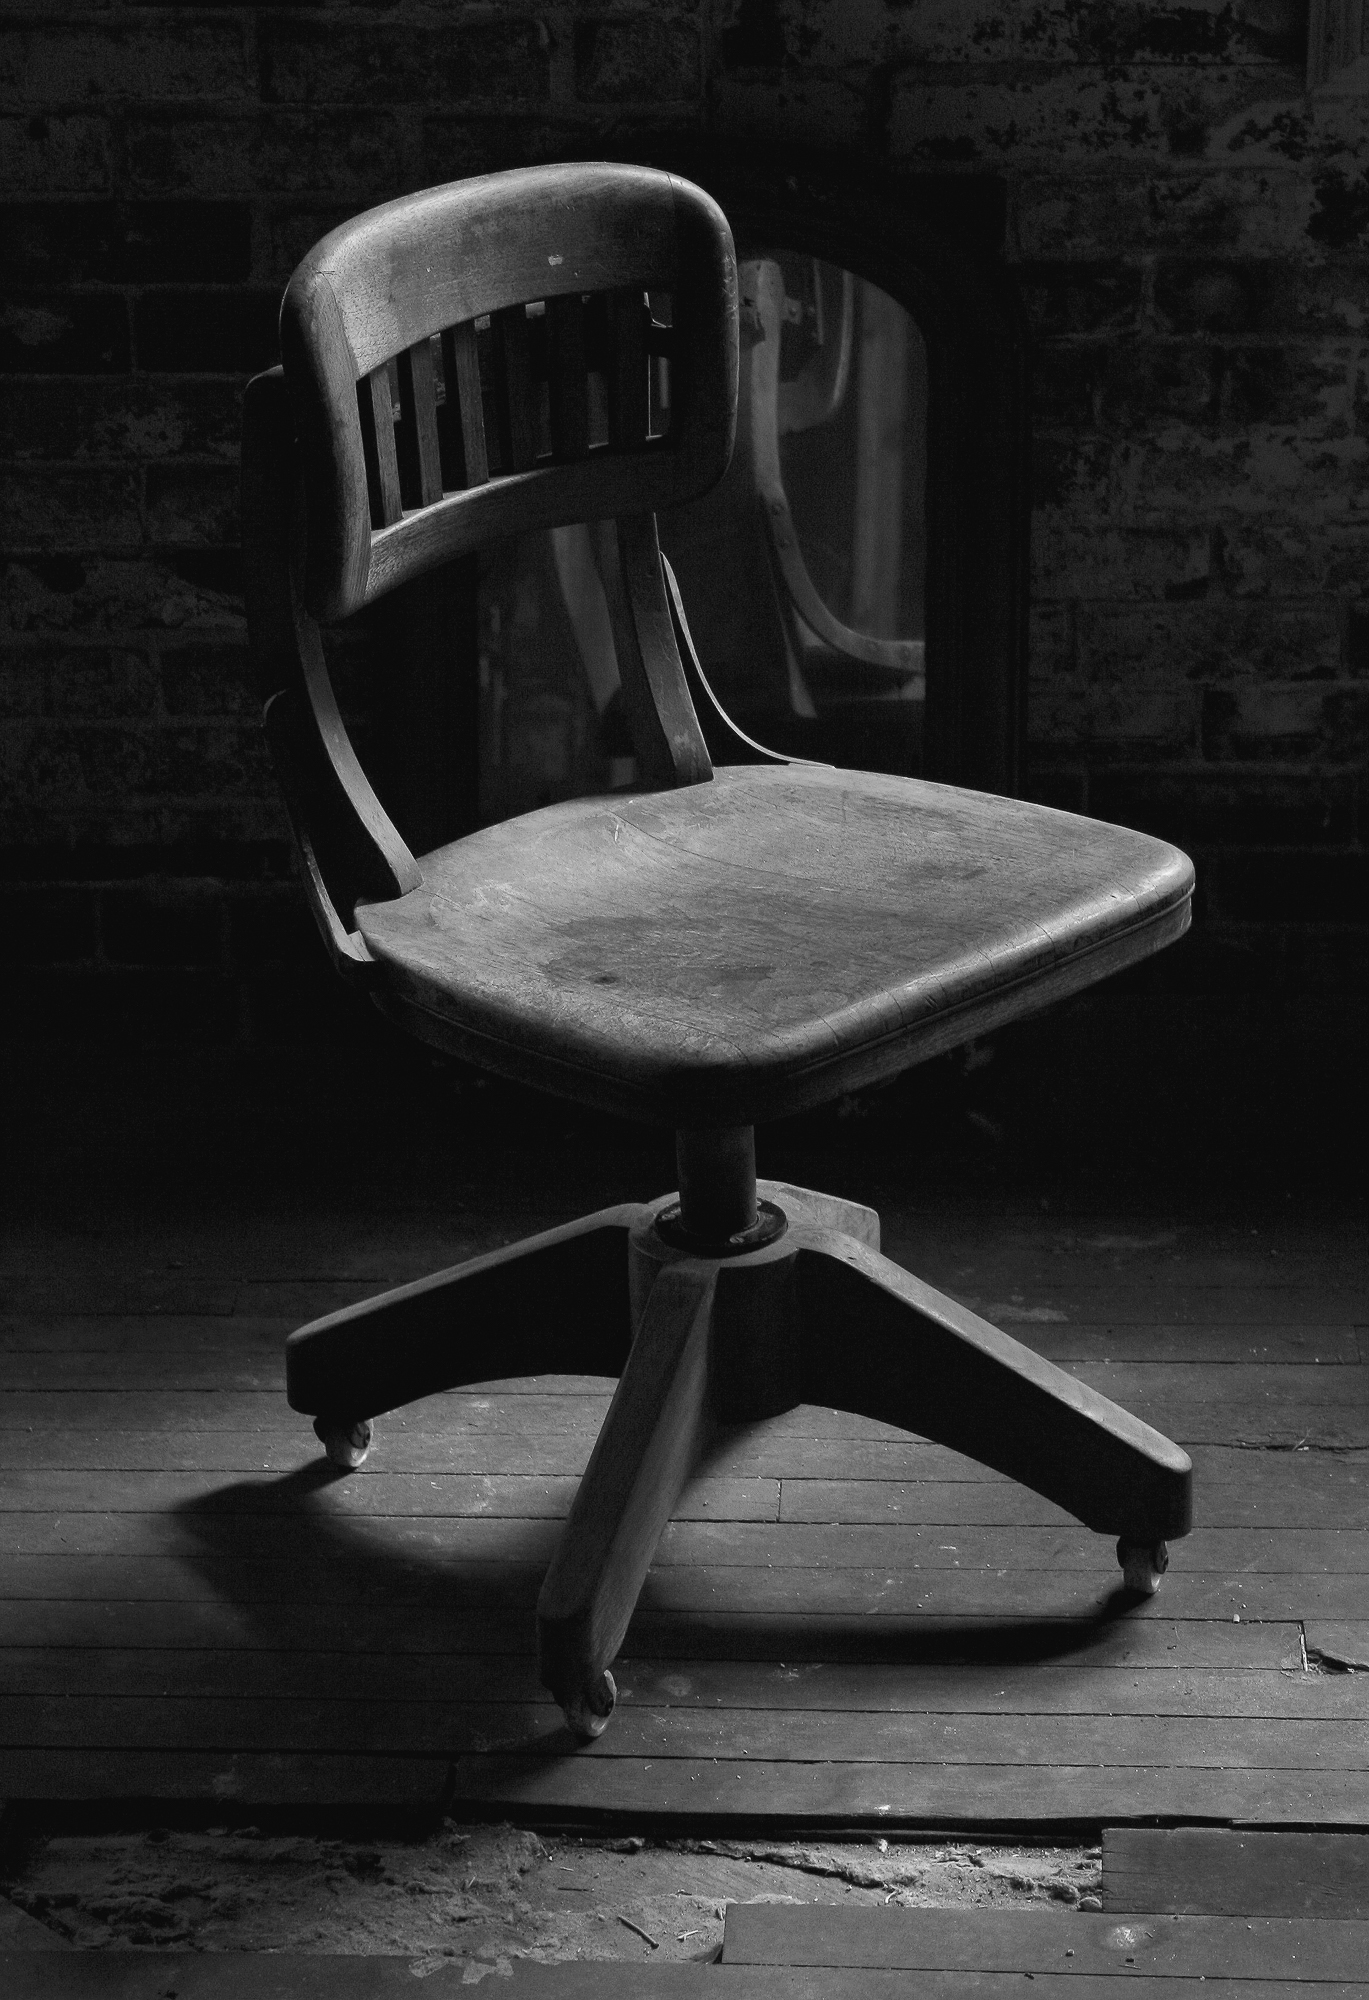 CHAIR bw 2.jpg